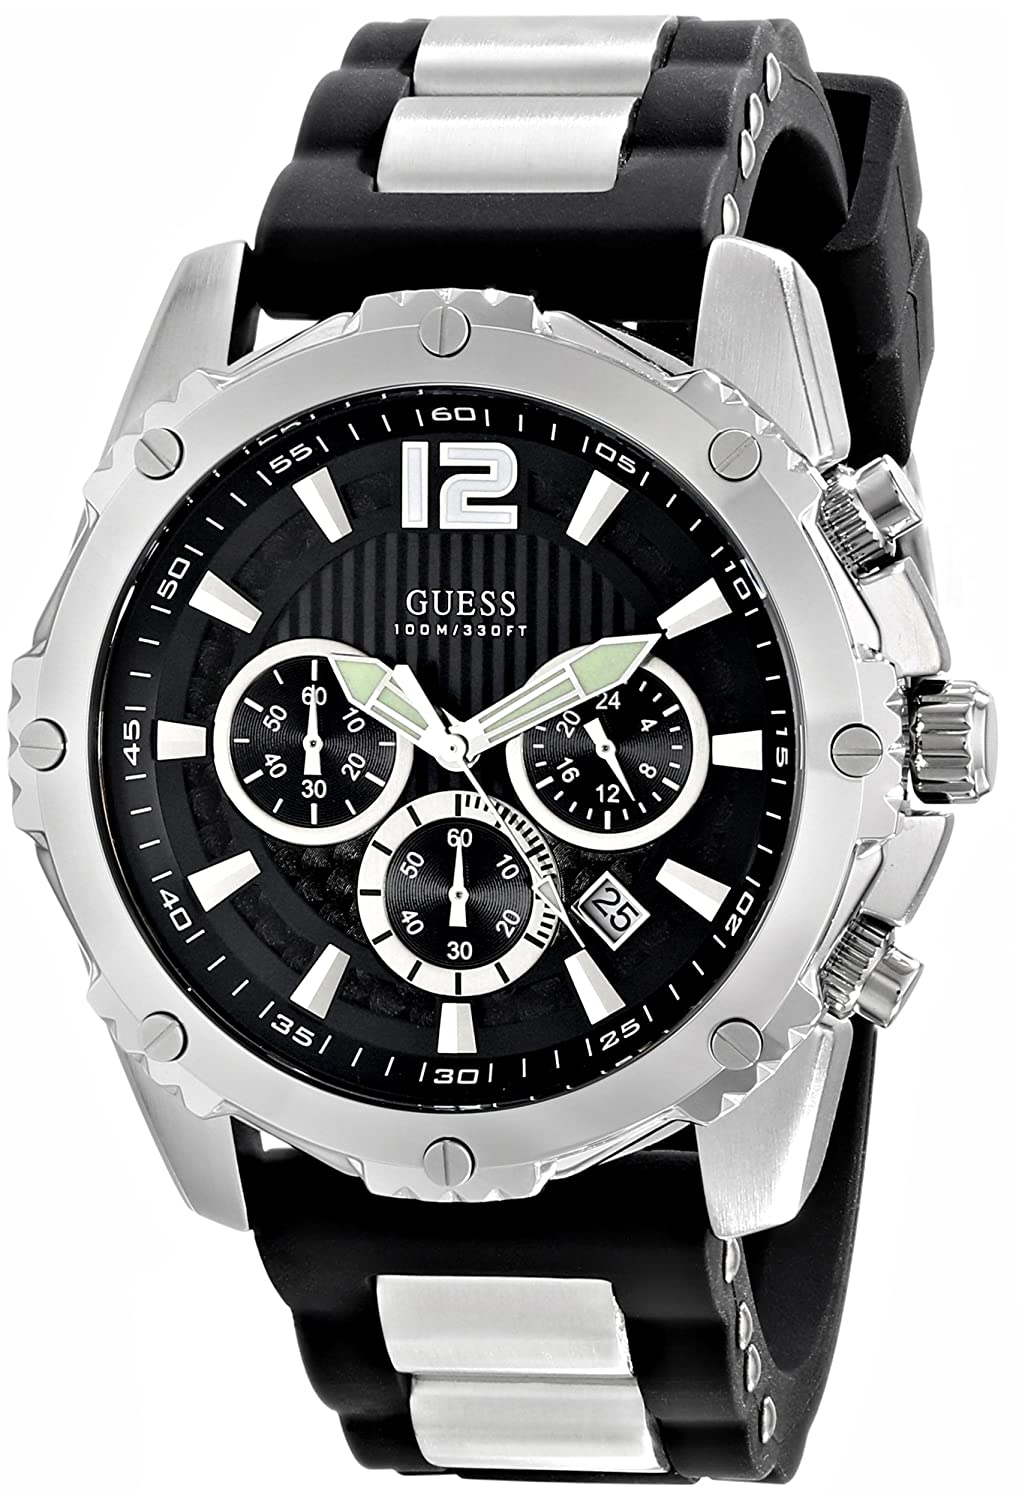 258d78ba8 Amazon.com: GUESS Men's U0167G1 Sporty Silicone & Metal Silver-Tone  Chronograph Watch: Guess: Watches